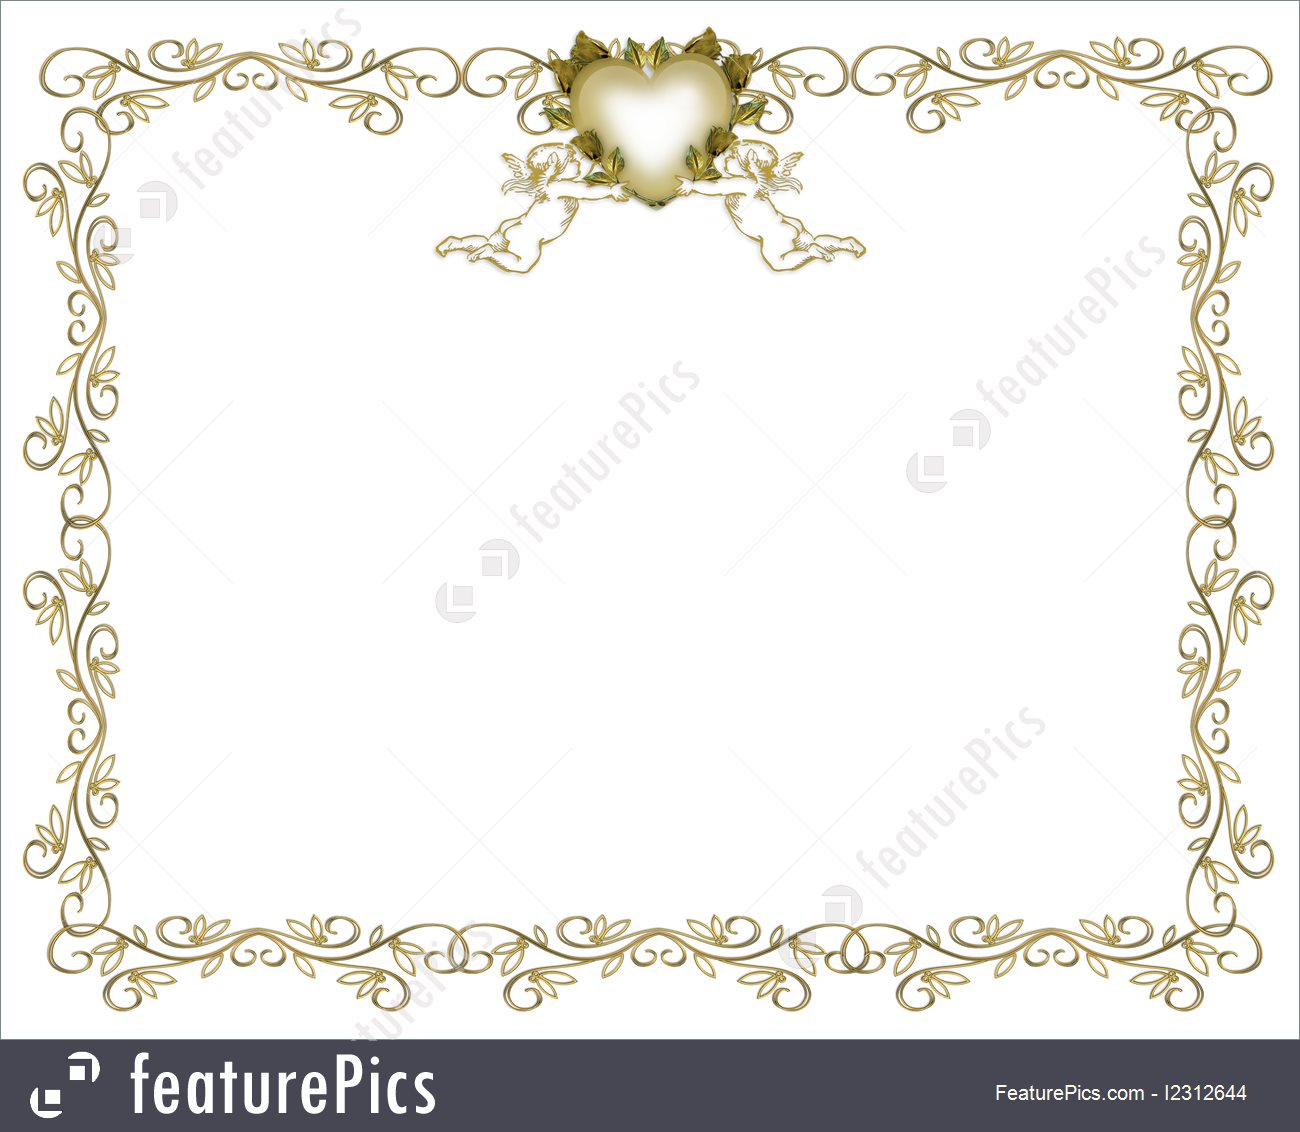 birthday party borders for invitations ; wedding-invitation-stock-illustration-1312644